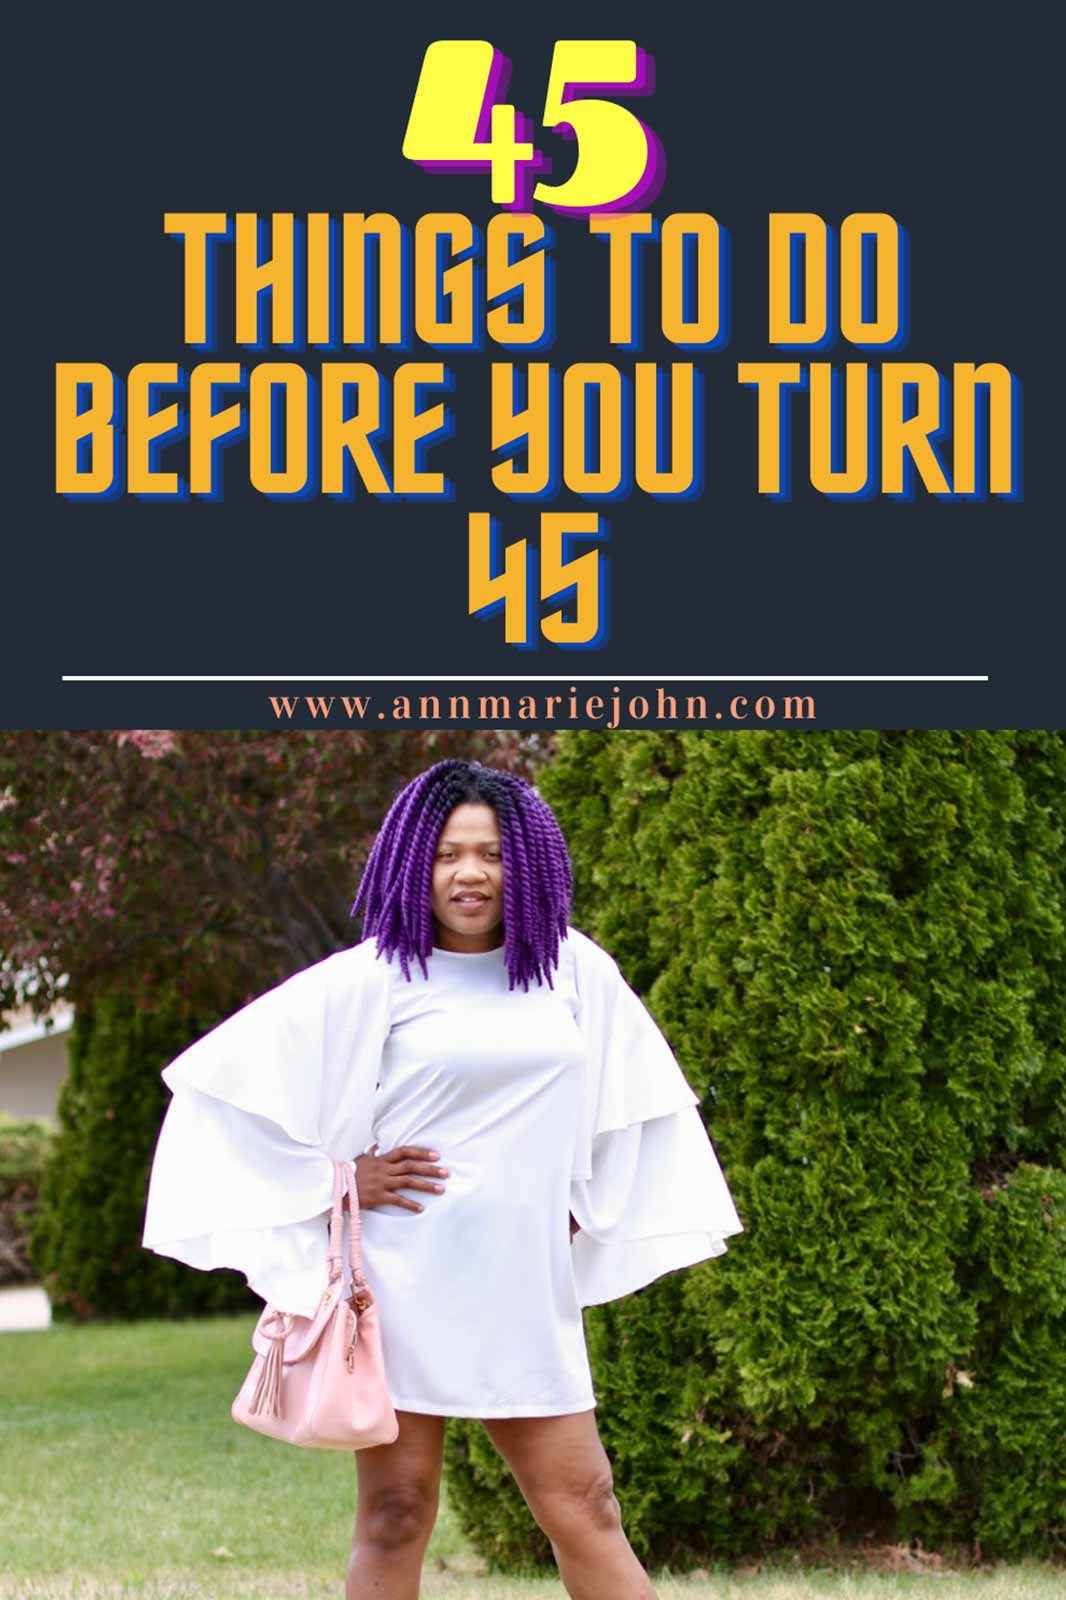 45 Things To Do Before You Turn 45